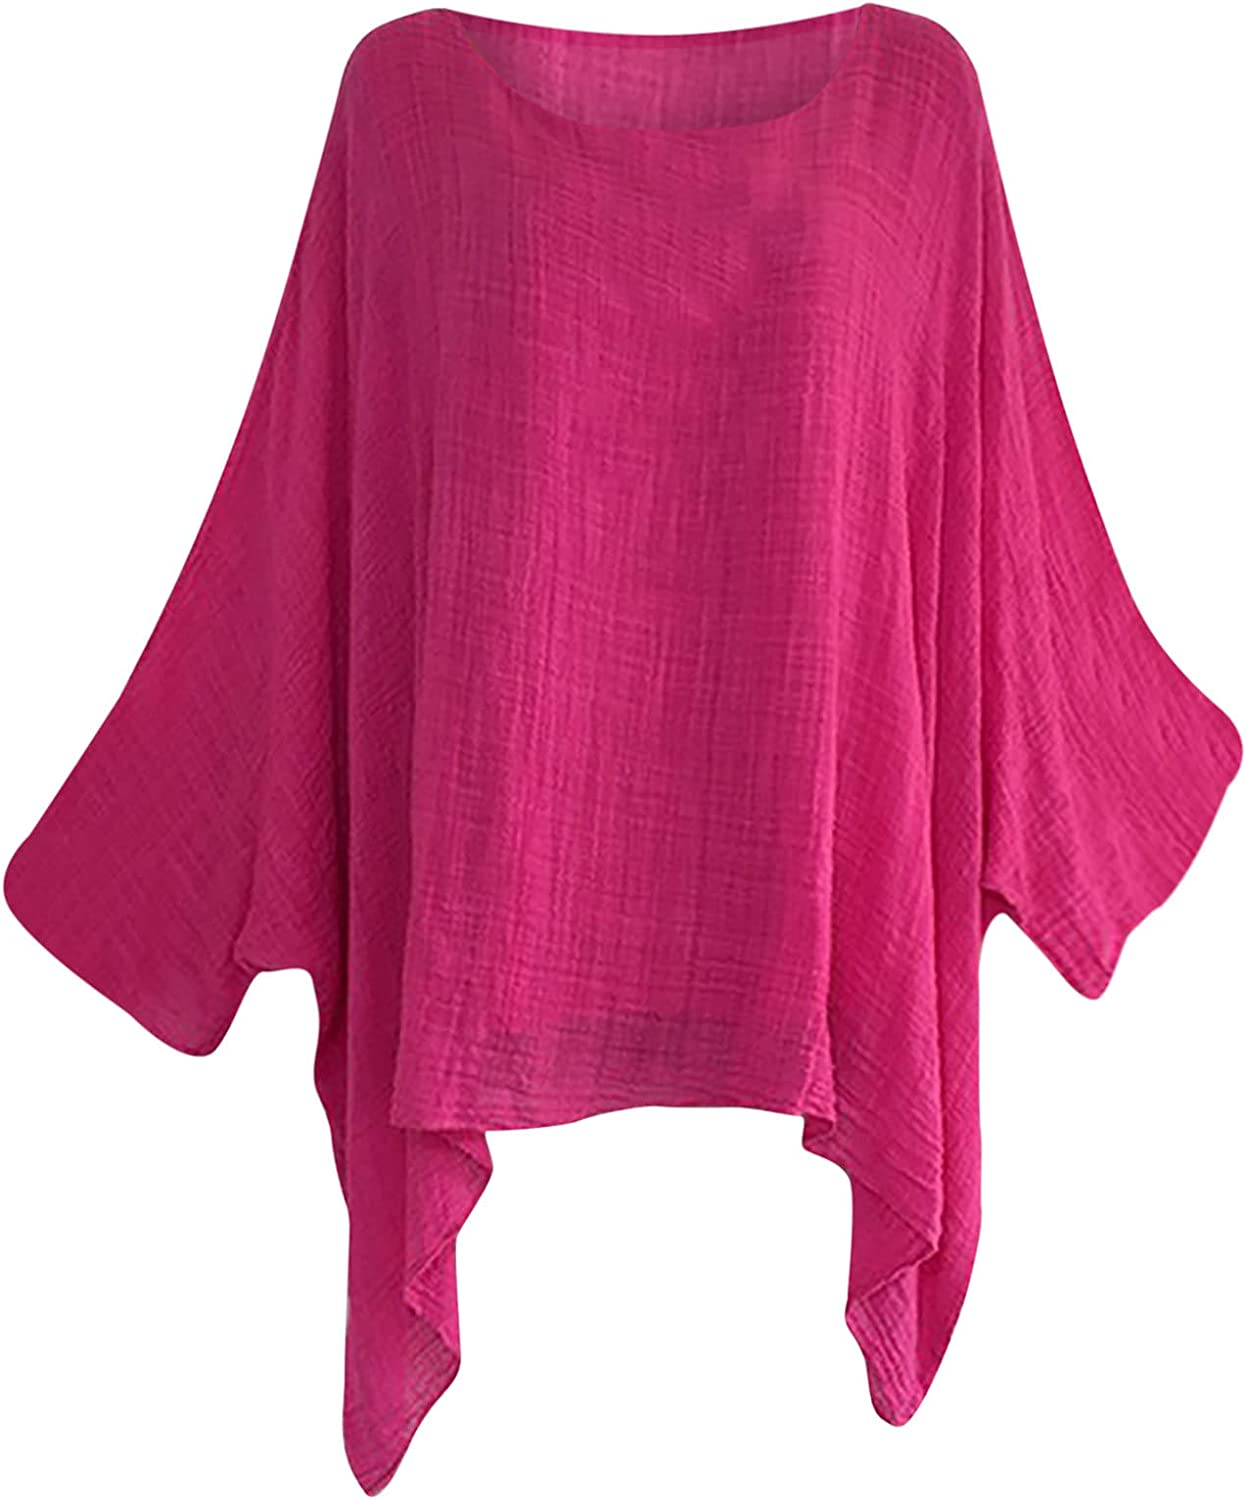 5665 Women's Tunic Tops Batwing Sleeve Basic Loose T Shirts Solid Color High Low Tee Half Sleeve Blouse Oversized Nightshirt